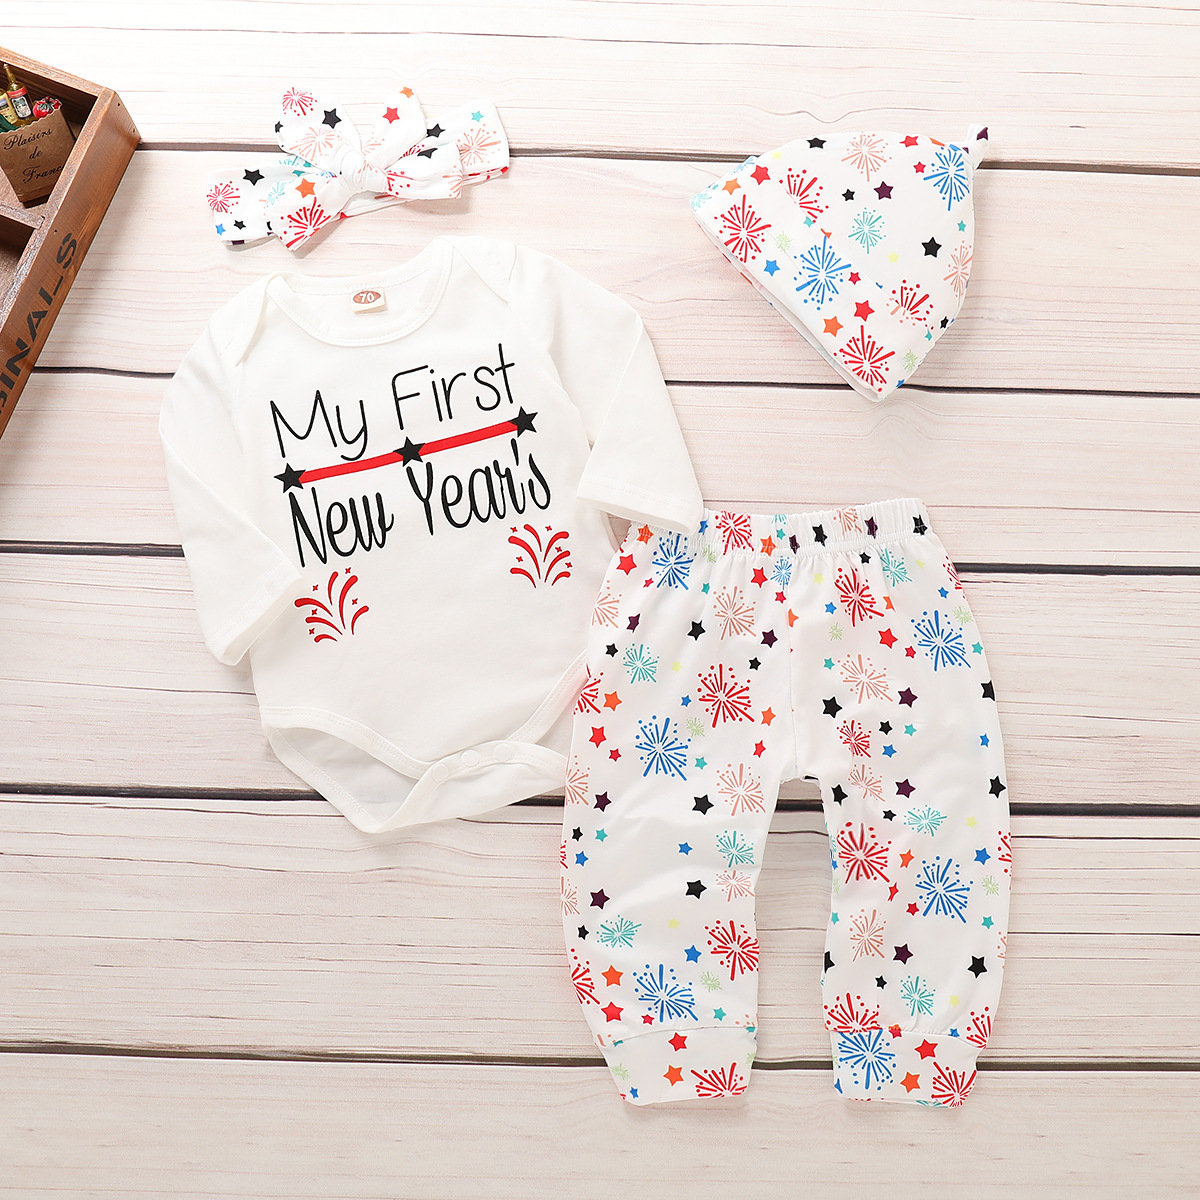 4Pcs New Year Print Baby Romper Clothing Set For 0-24M